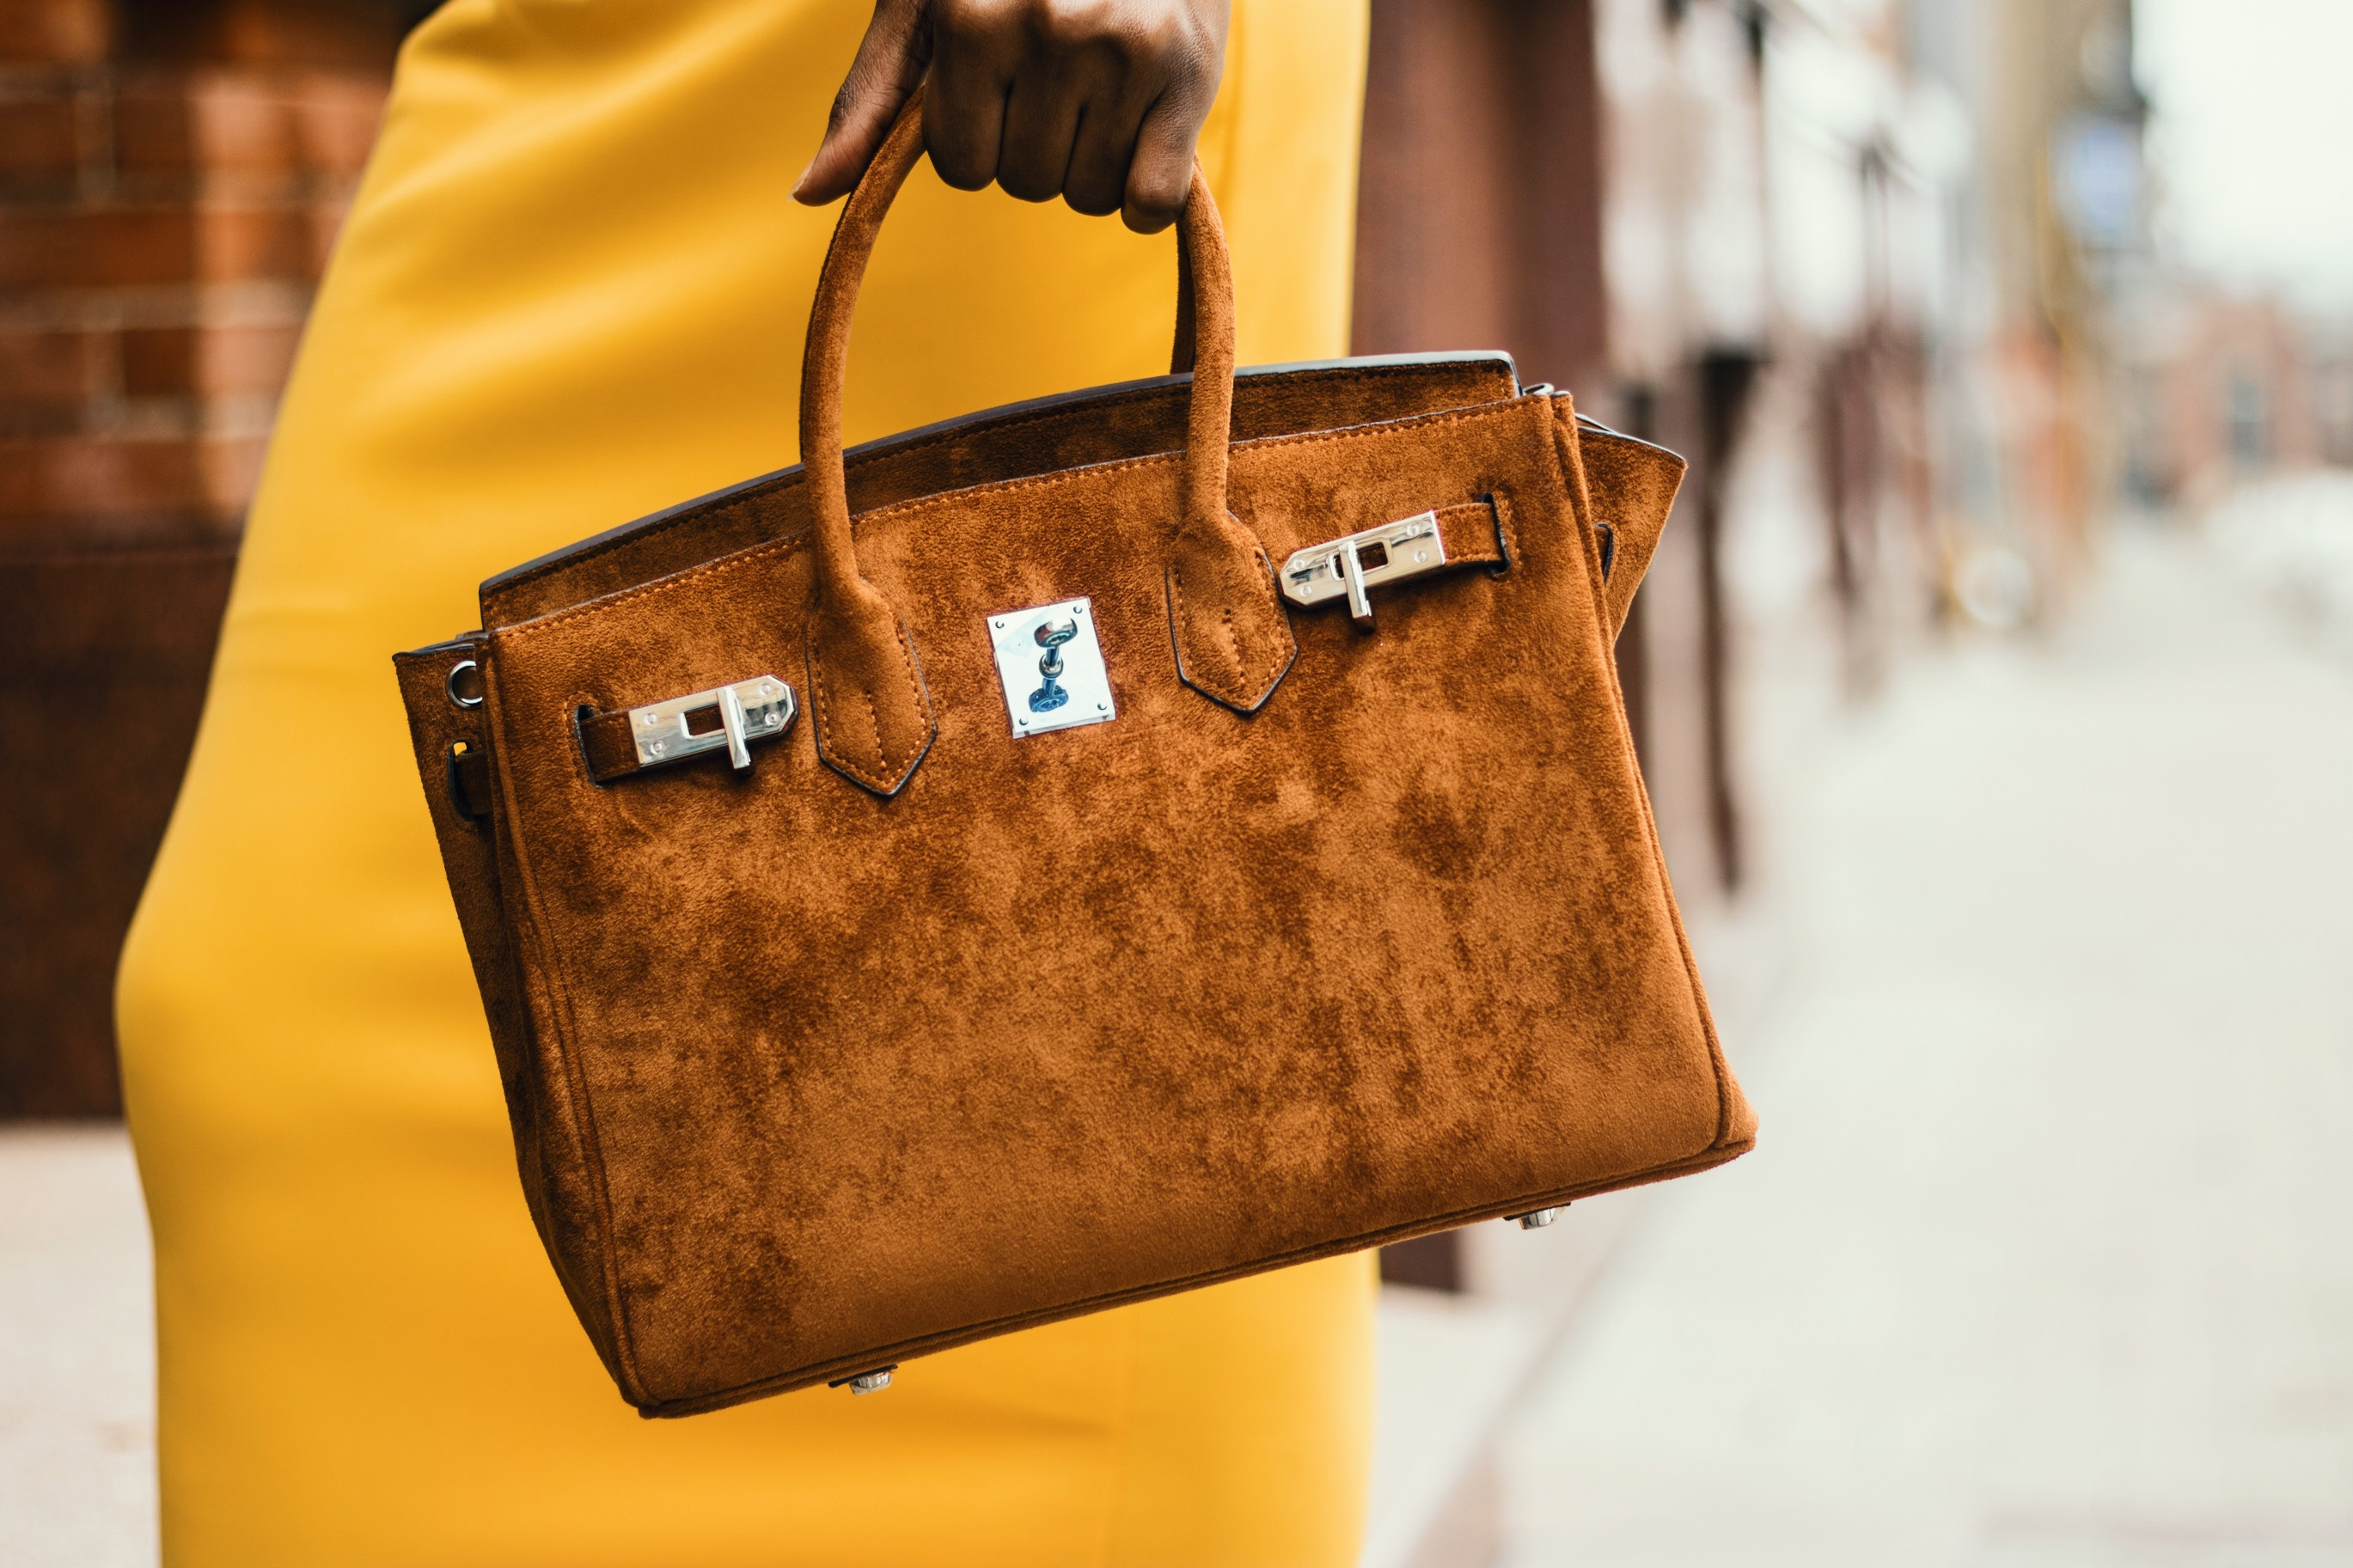 When it comes to choosing a designer handbag, question is which style do you go for? We debunk our top splurge purchase tips   Elle Blonde Luxury Lifestyle Destination Blog